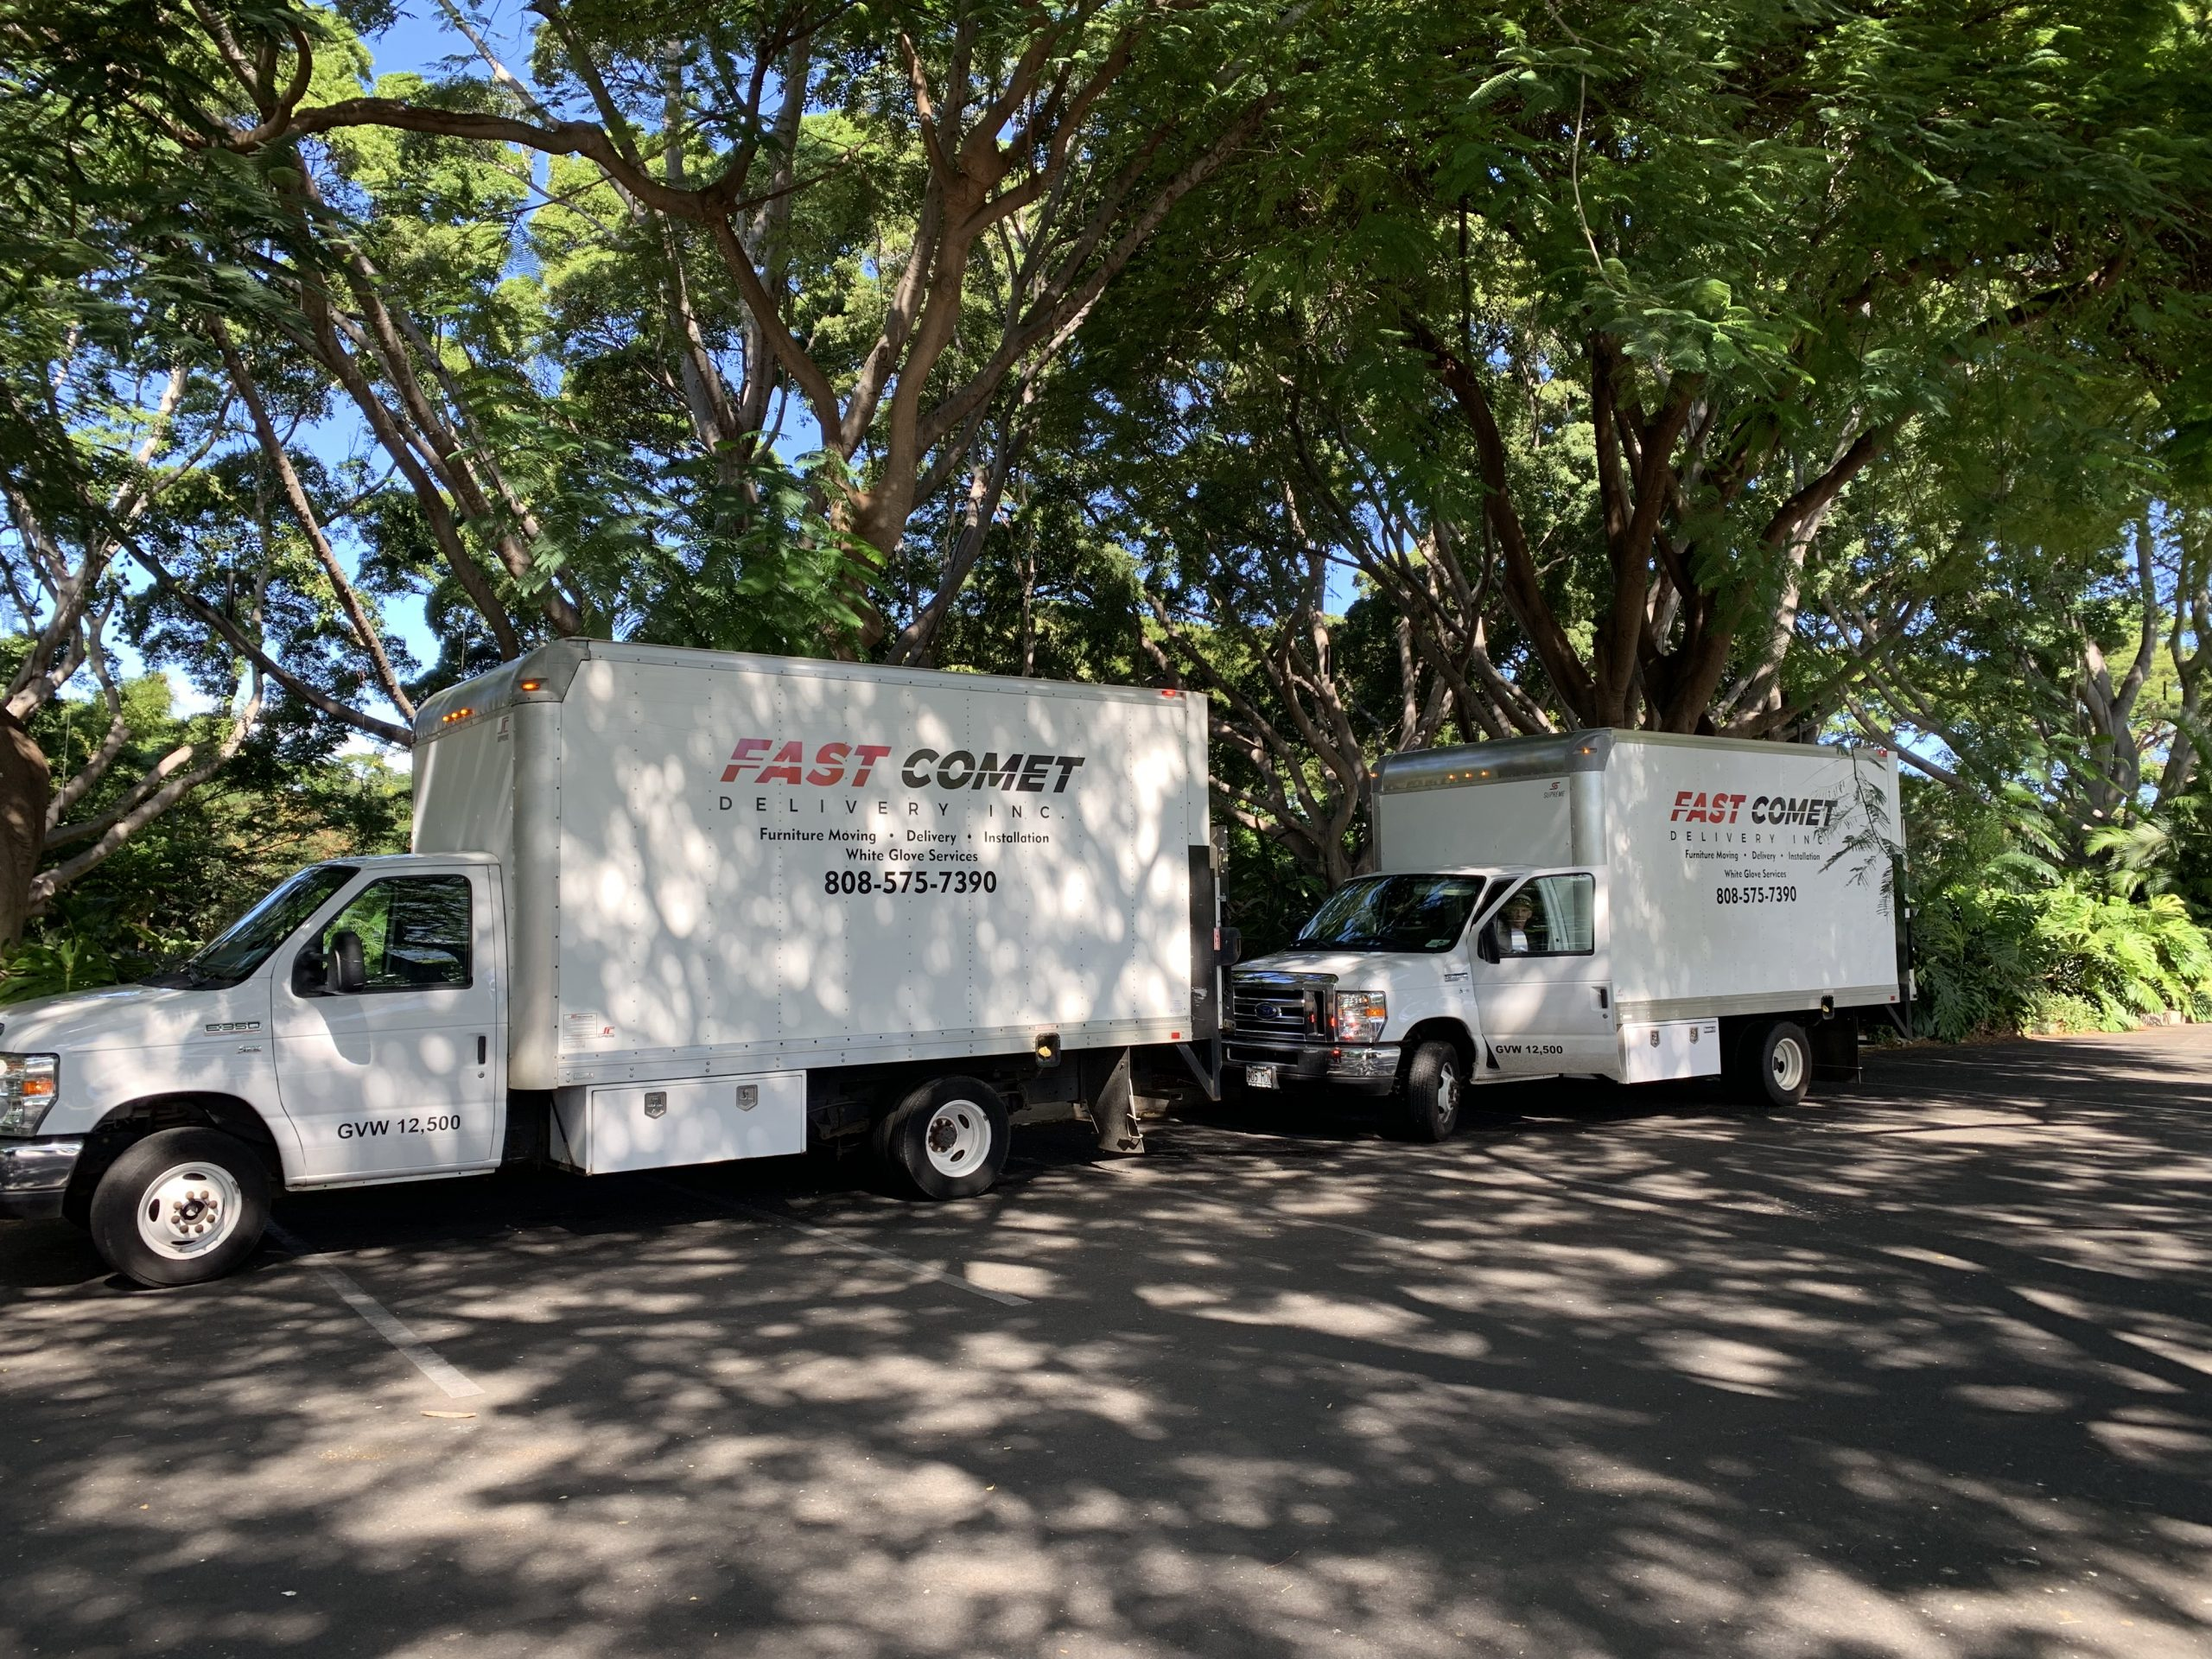 Fast Comet Delivery Truck 20 - Maui Hawaii